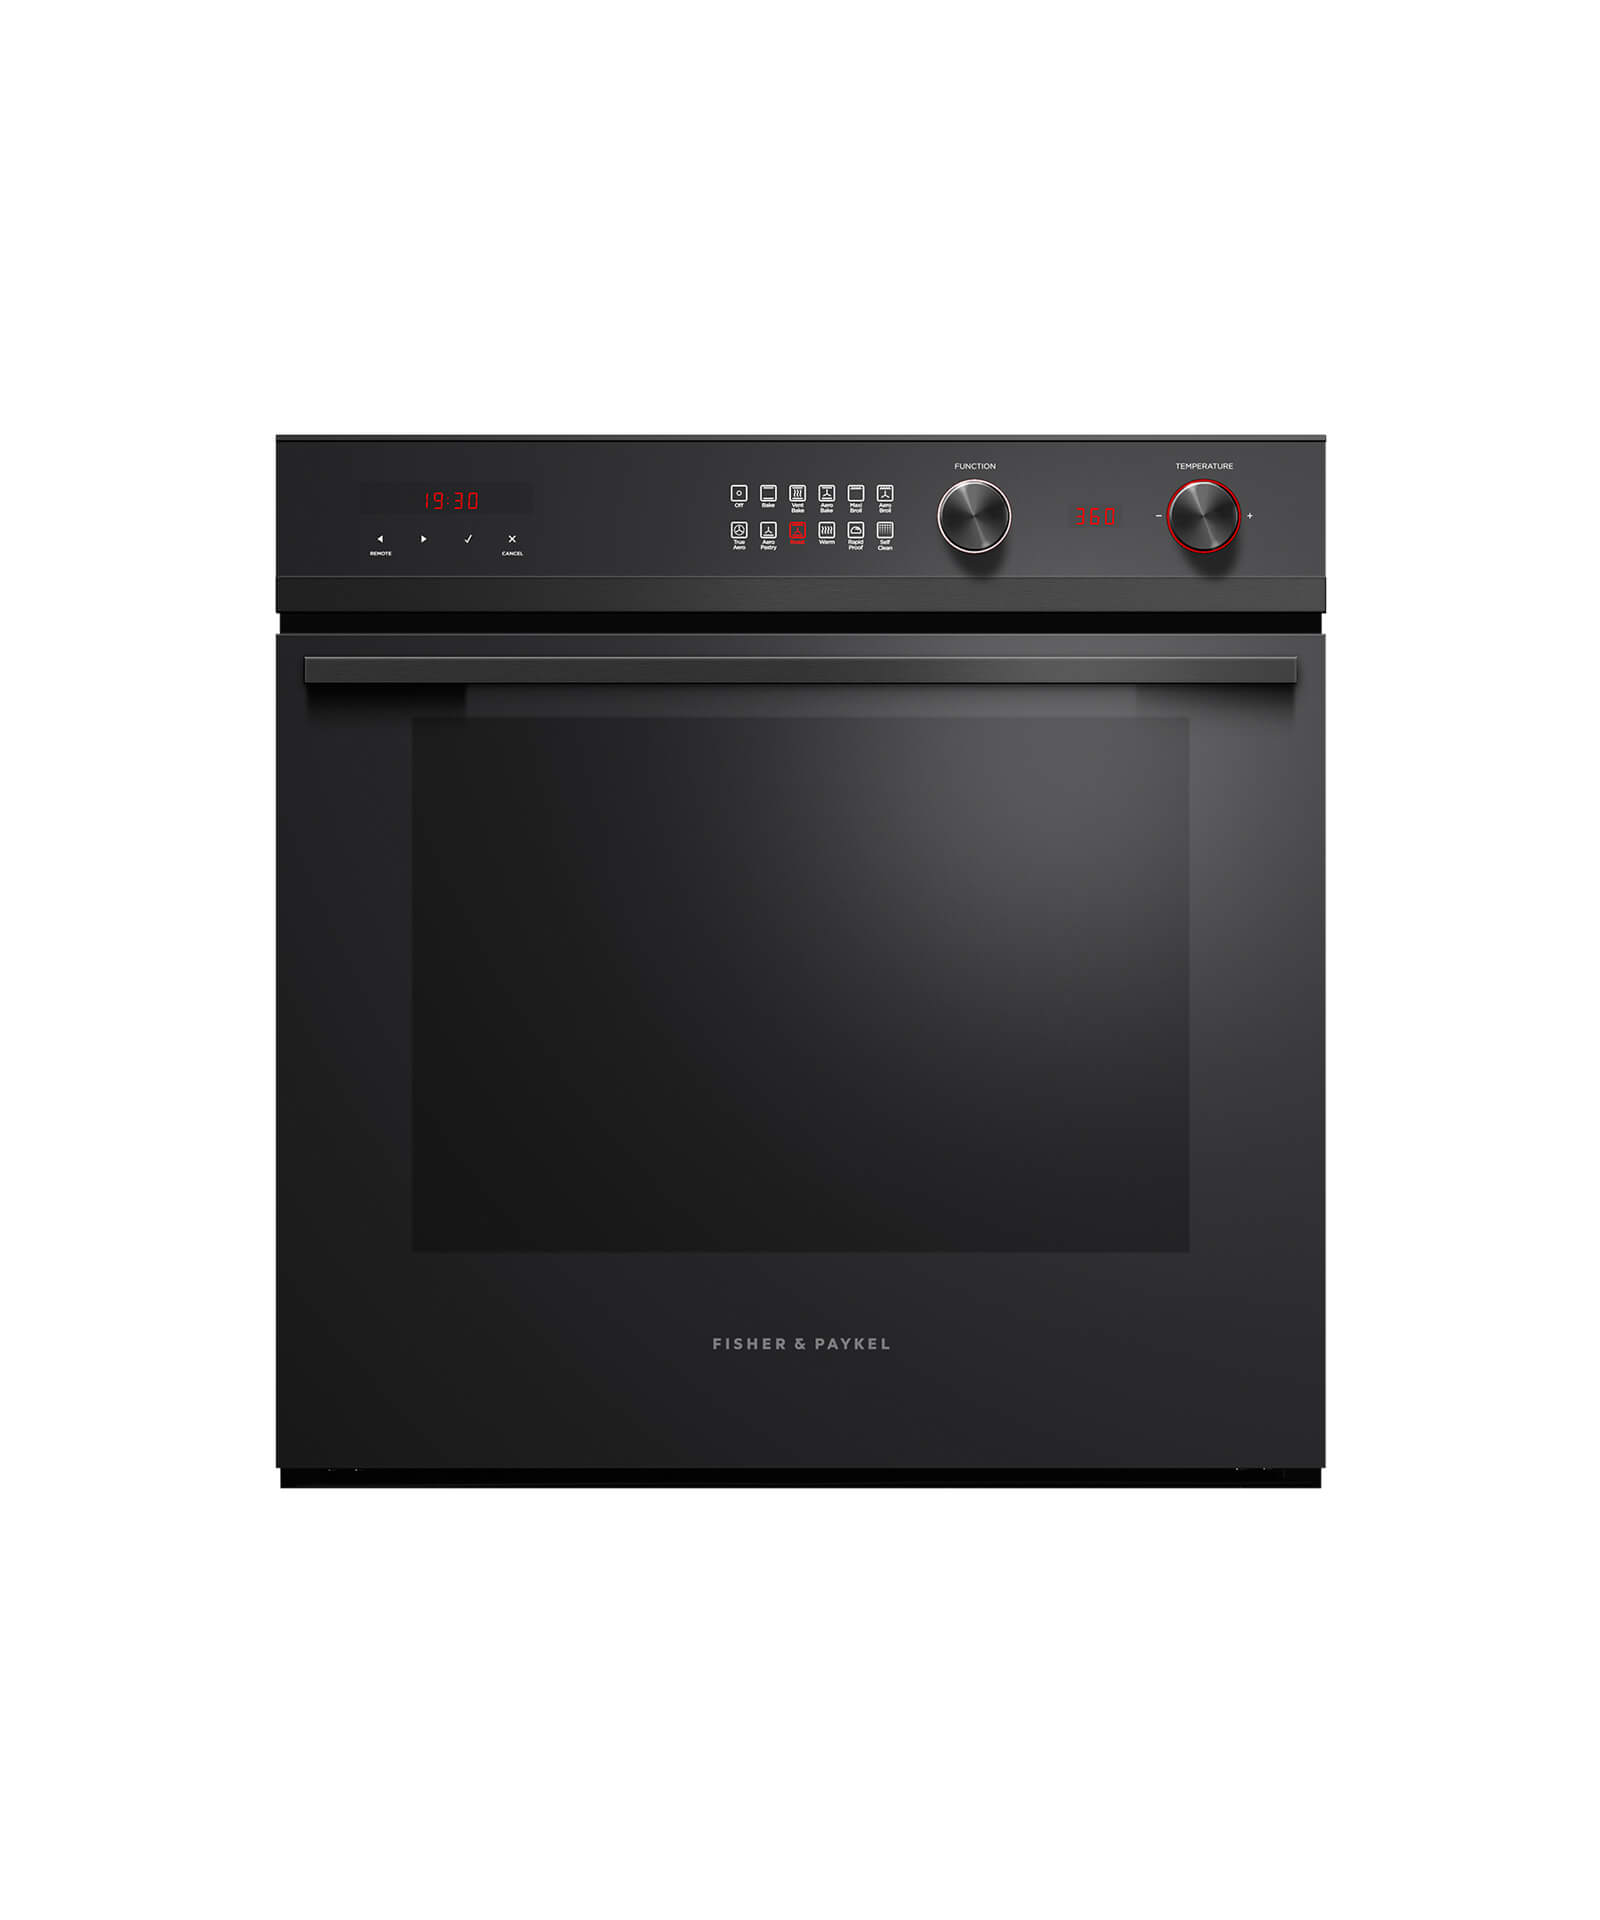 "Fisher and Paykel DISPLAY MODEL--Built-in Oven, 24"", 3 cu ft, 11 Function, Self-cleaning"